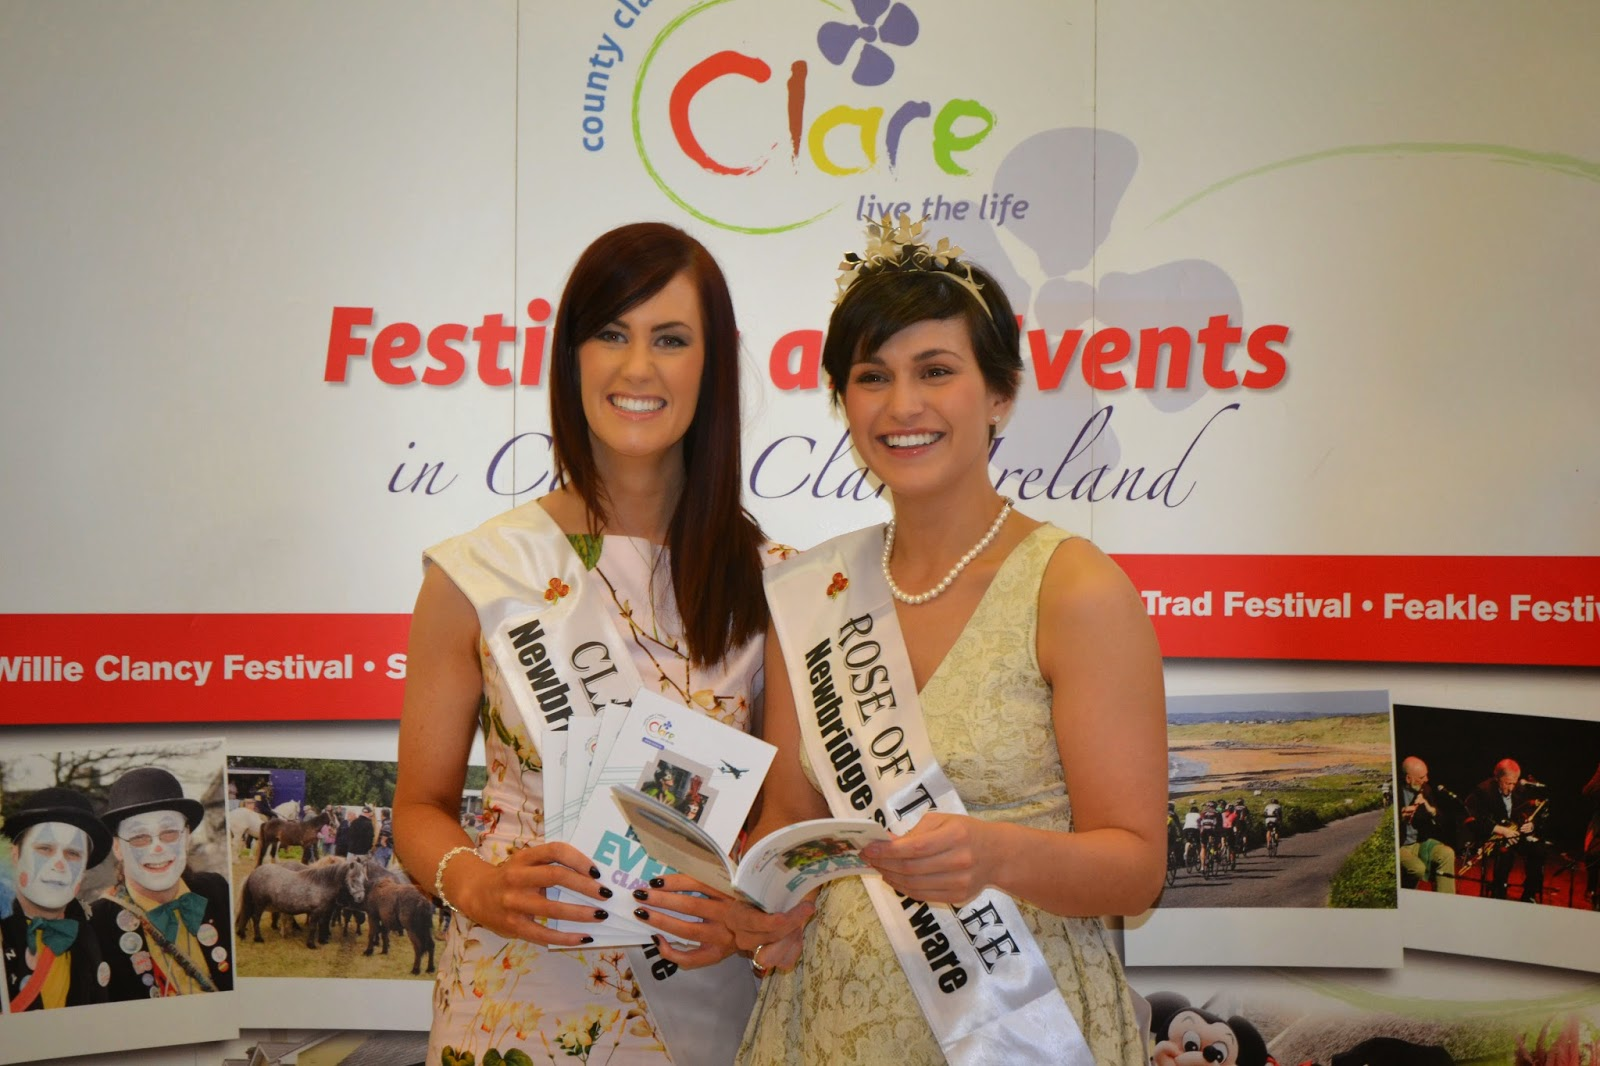 Clare Festivals and Events Guide is launched